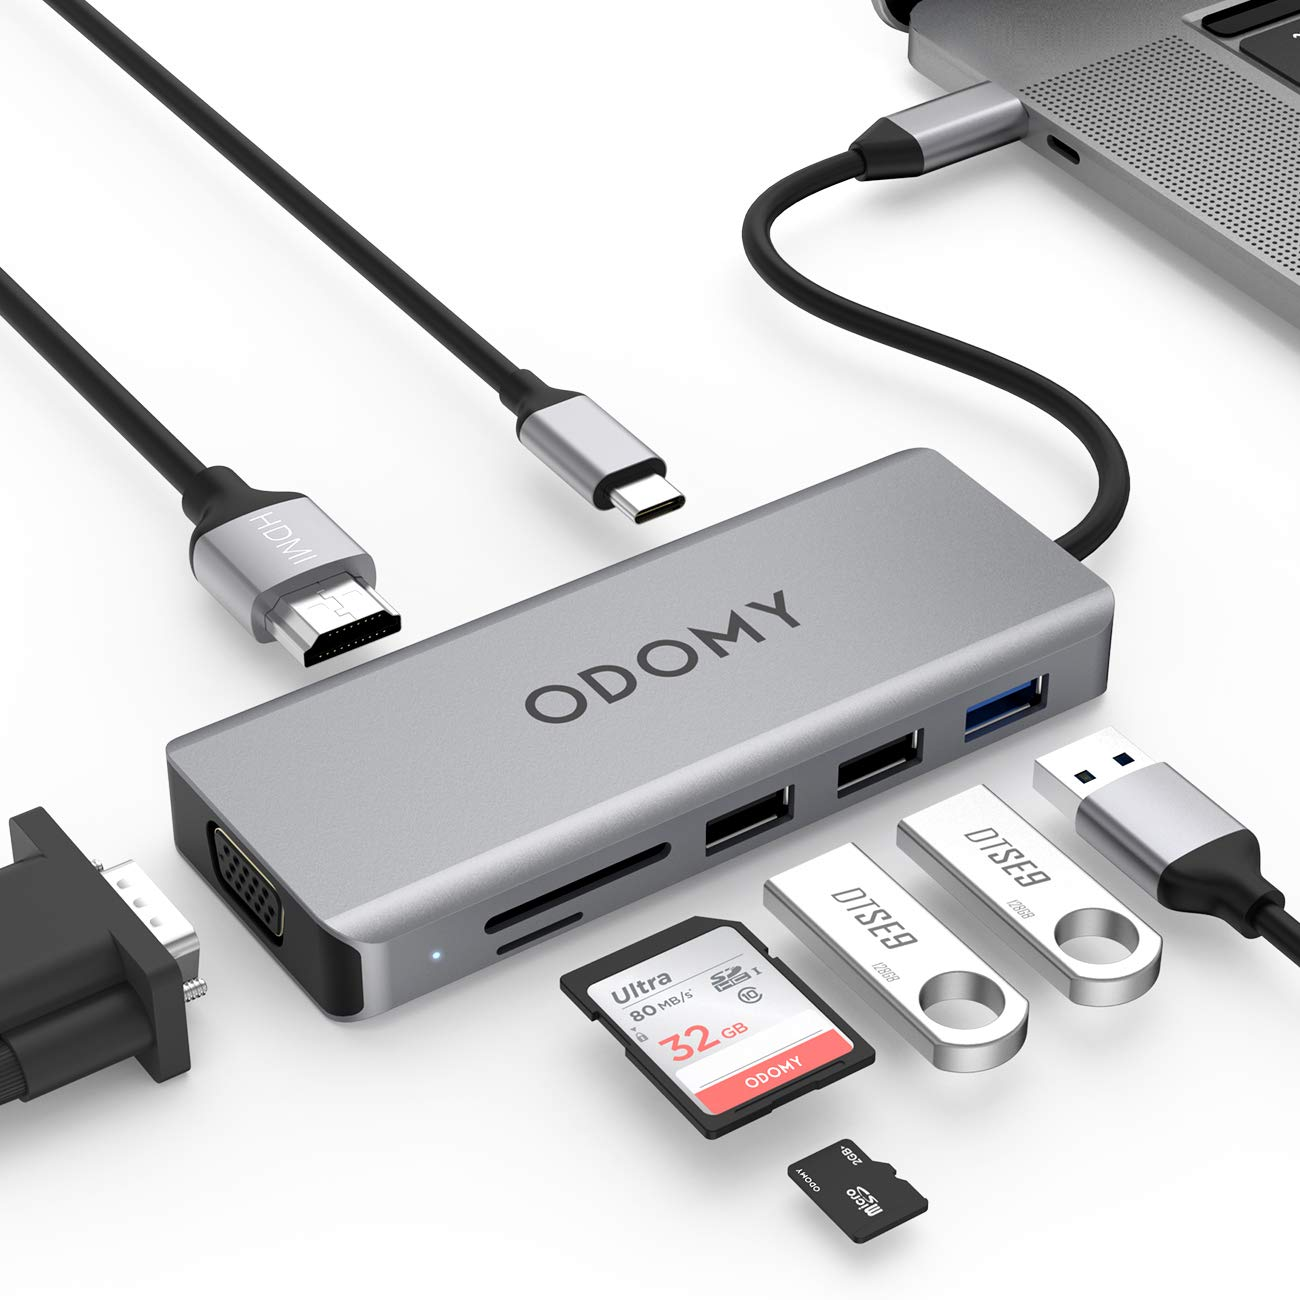 ODOMY USB C HUB 9-in-1 Type C Adapter 4K HDMI, VGA, 100W USB-C Power Delivery, 1 USB3.0, 2 USB2.0, SD/TF Card Reader, Audio Compatible with MacBook Air&Pro, Chromebook, Other Type C Laptops&Cellphones